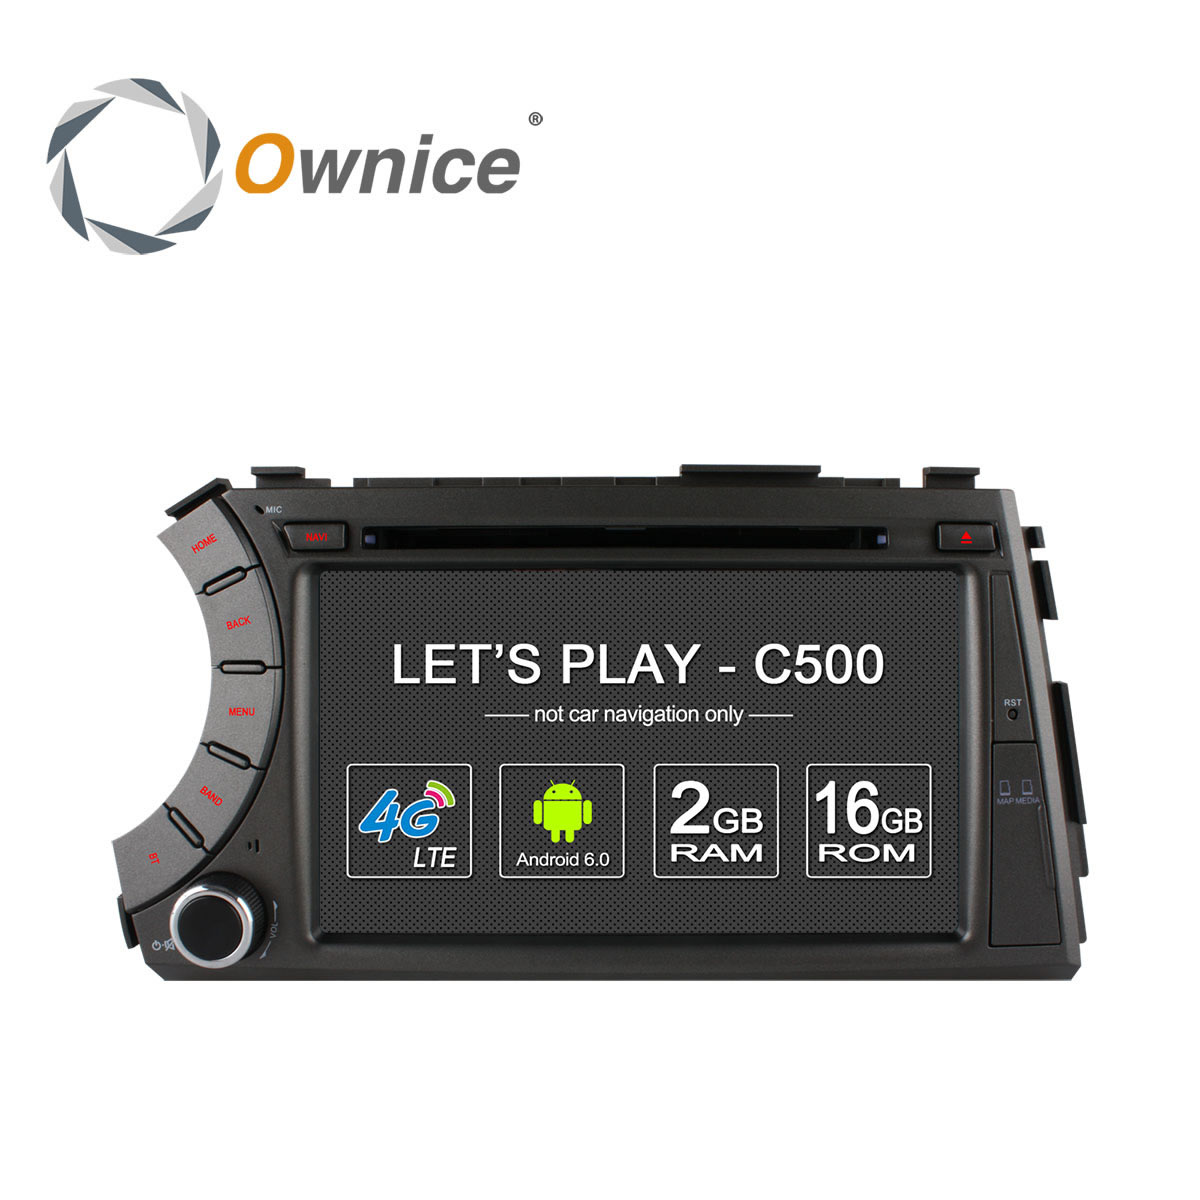 Ownice C500 4G SIM LTE 1024*600 Android 6.0 Quad Core car dvd gps player for ssangyong Kyron Actyon 4G Wifi BT radio 2GB RAM(China (Mainland))